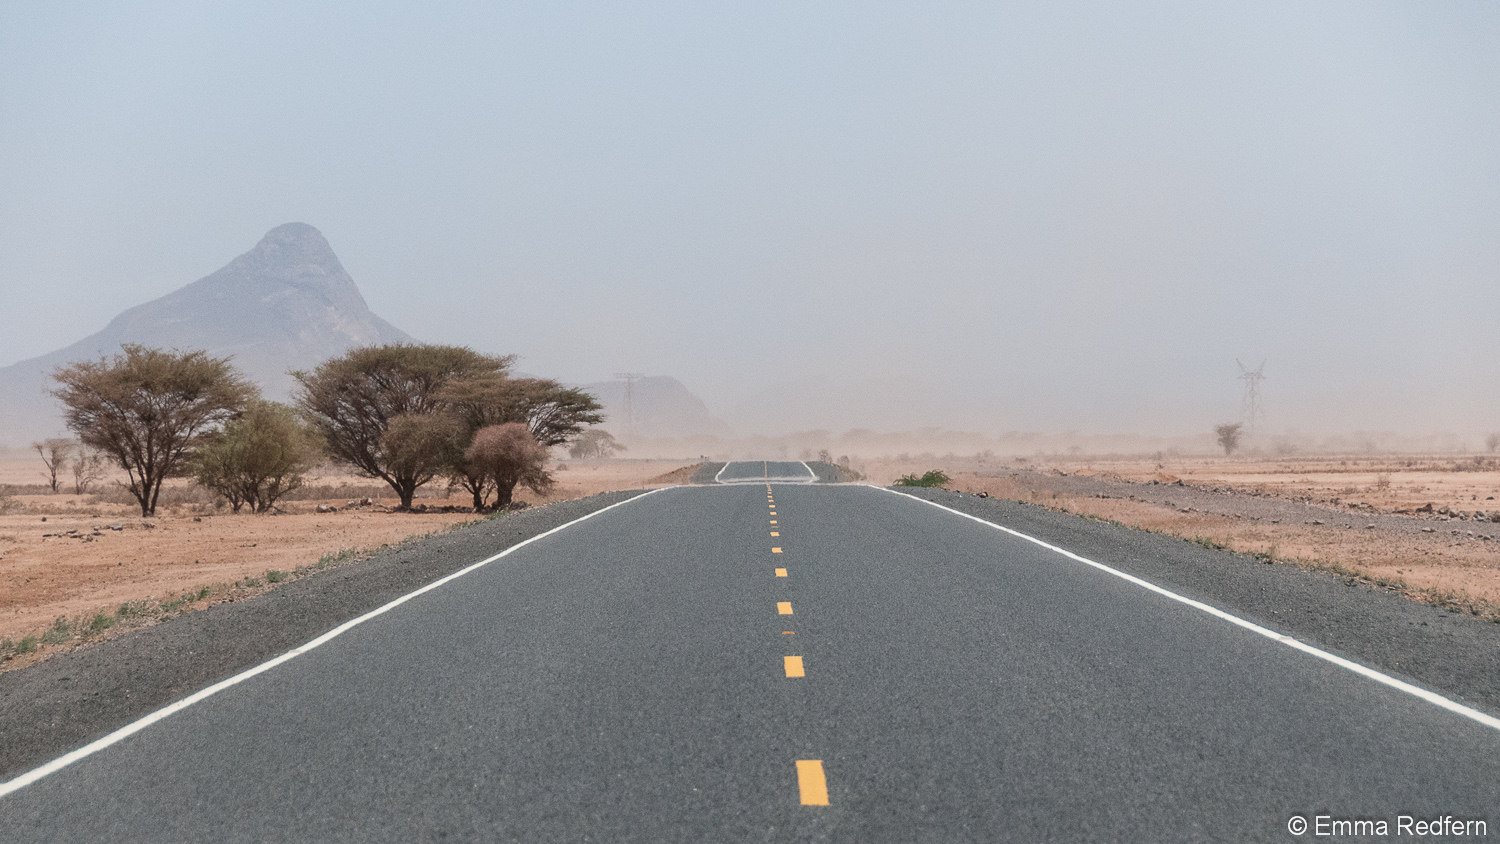 US $230M APPROVED FOR EXPANSION OF GREAT NORTH ROAD IN KENYA